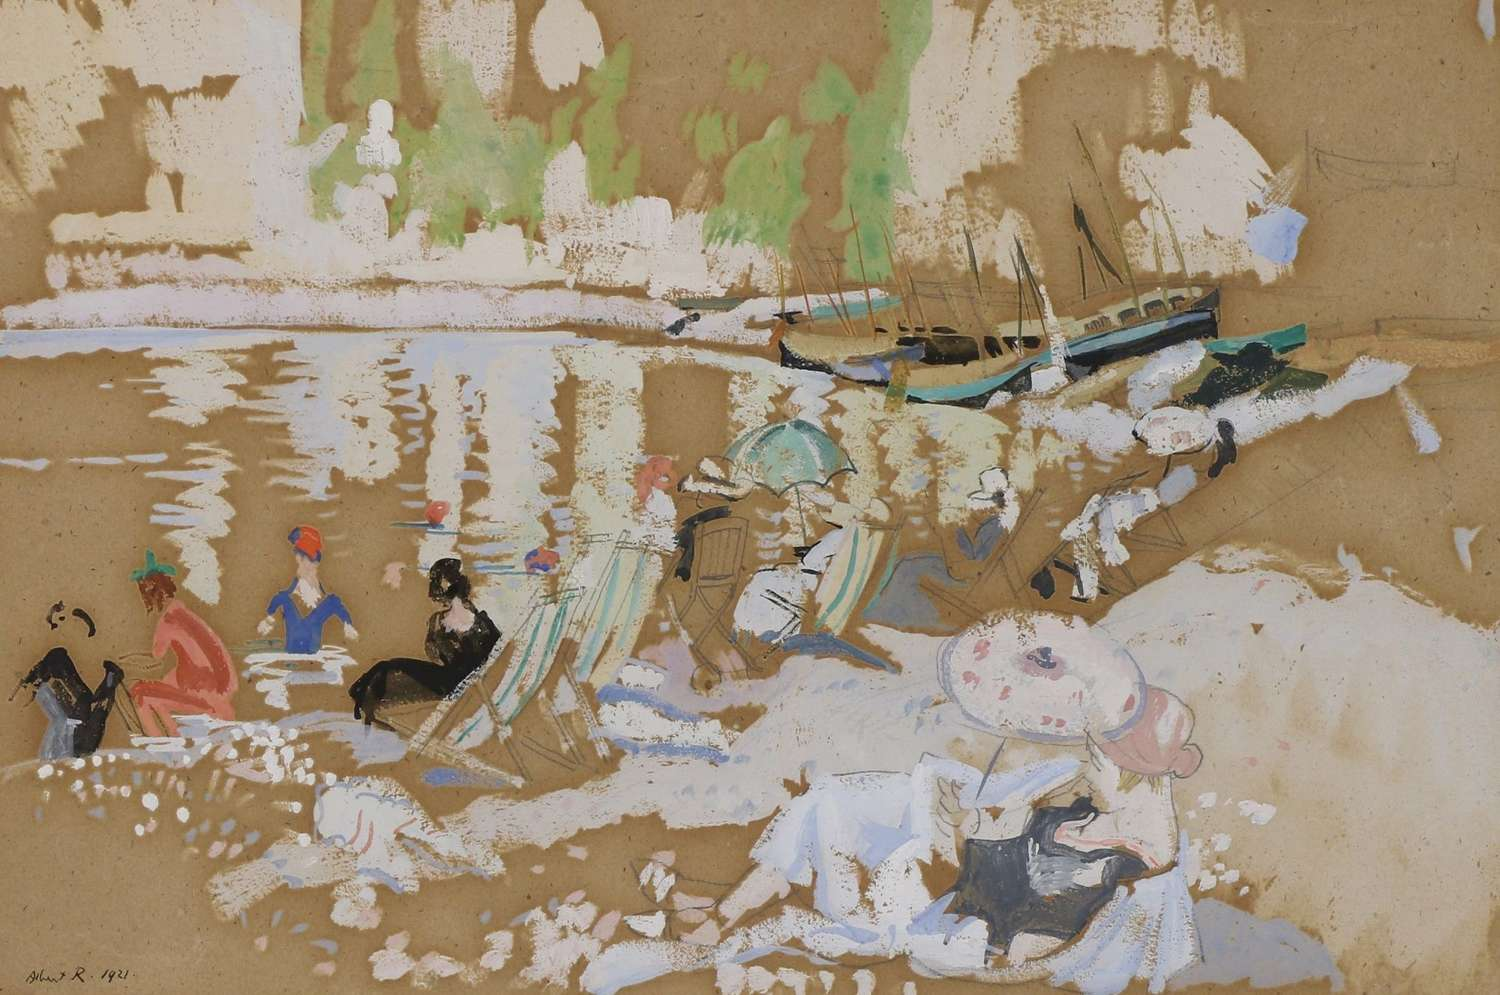 Albert Rutherston. 1881-1953. Figures by a Lake.